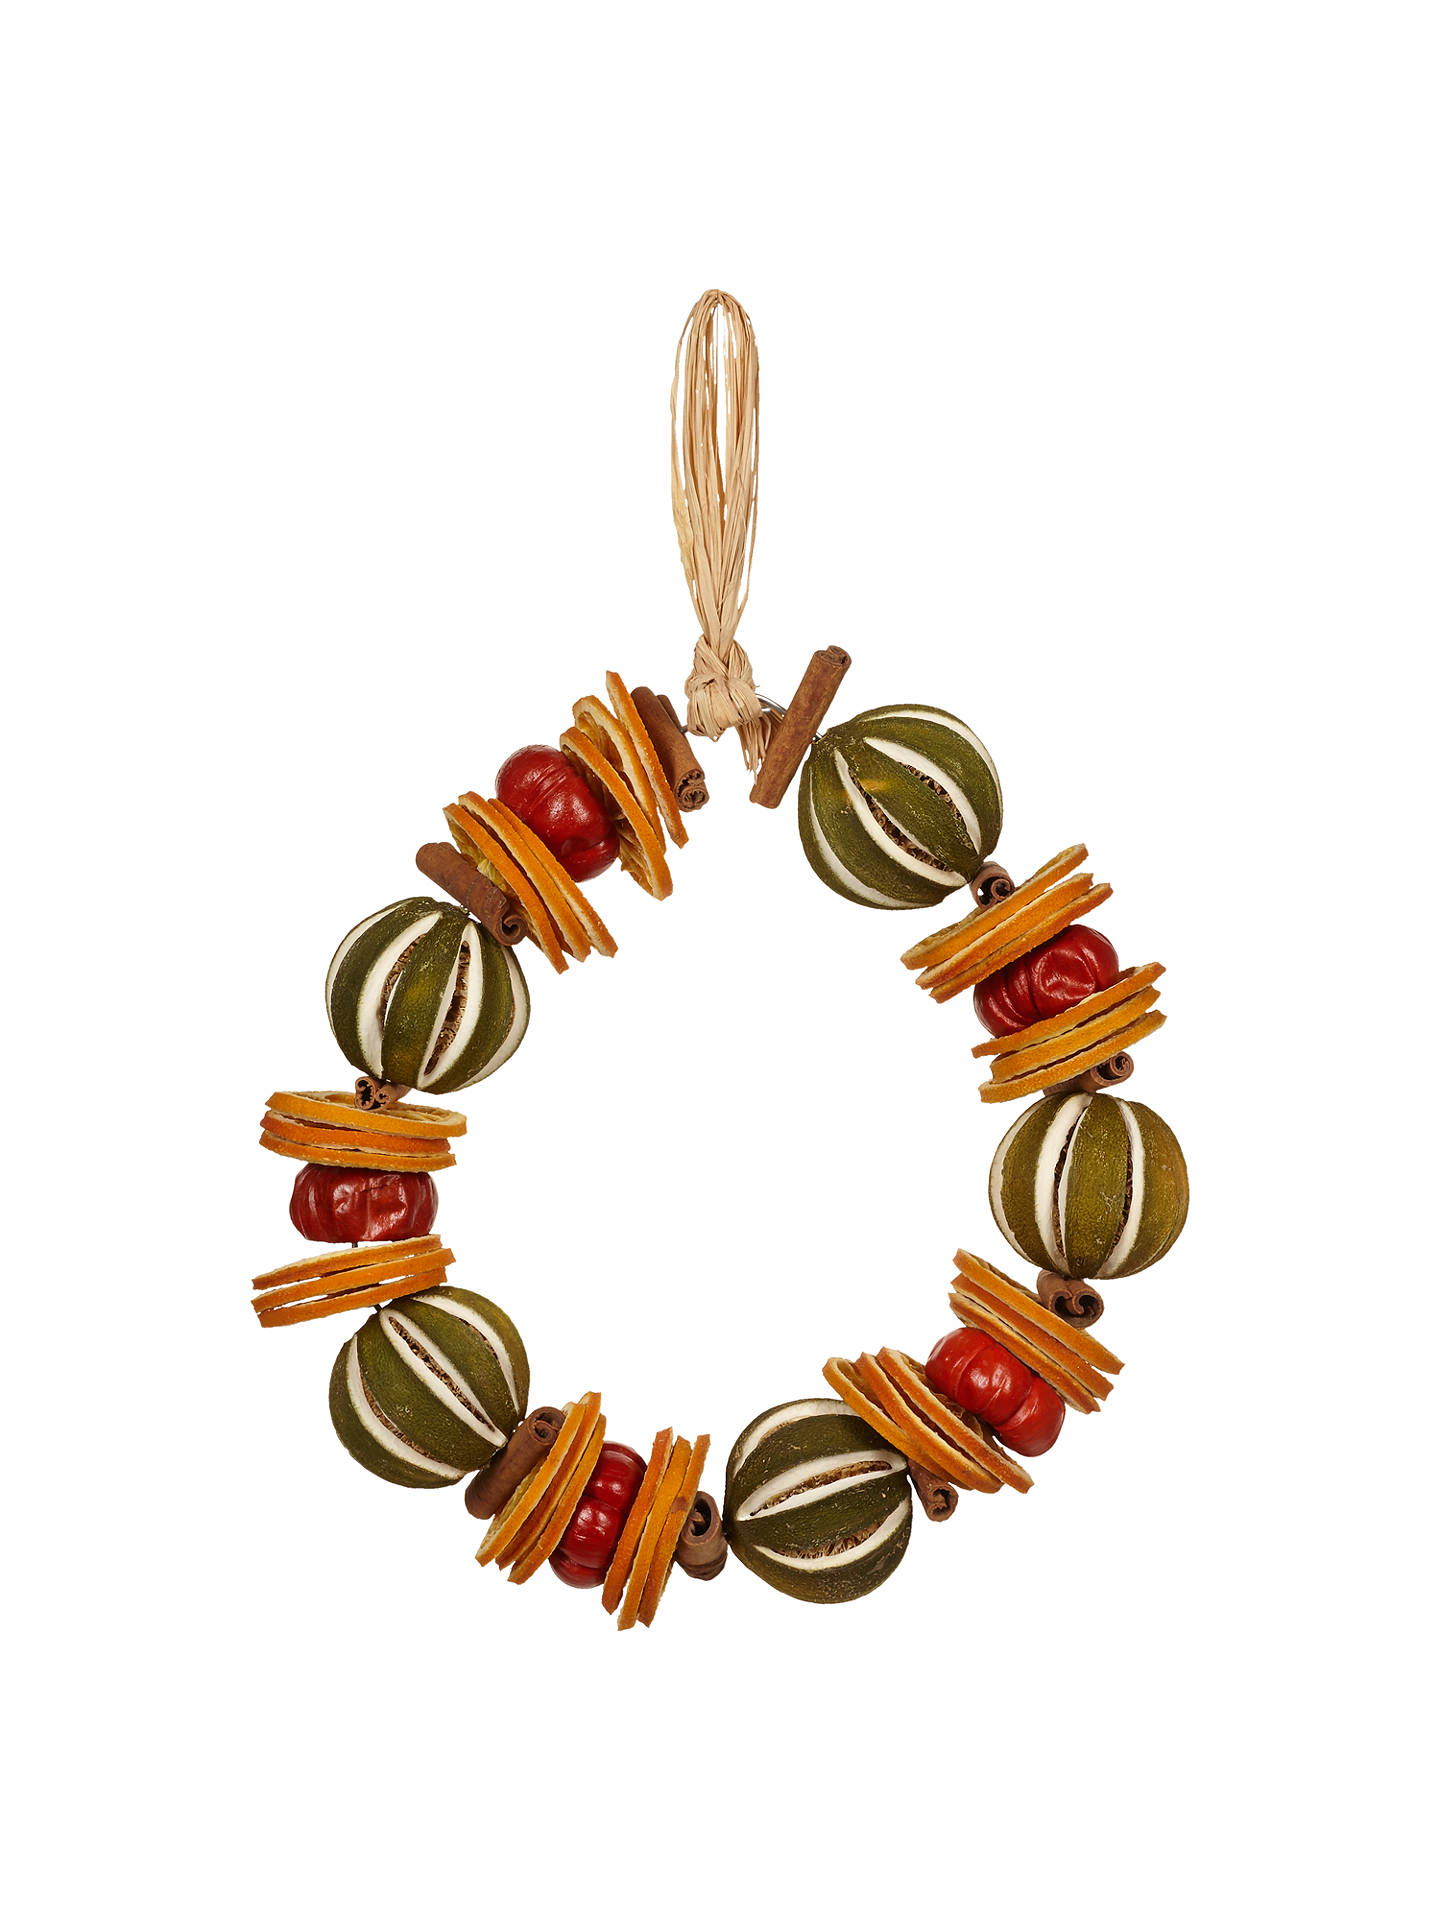 Buy Jormaepourri Ruskin House Lime Wreath Online at johnlewis.com